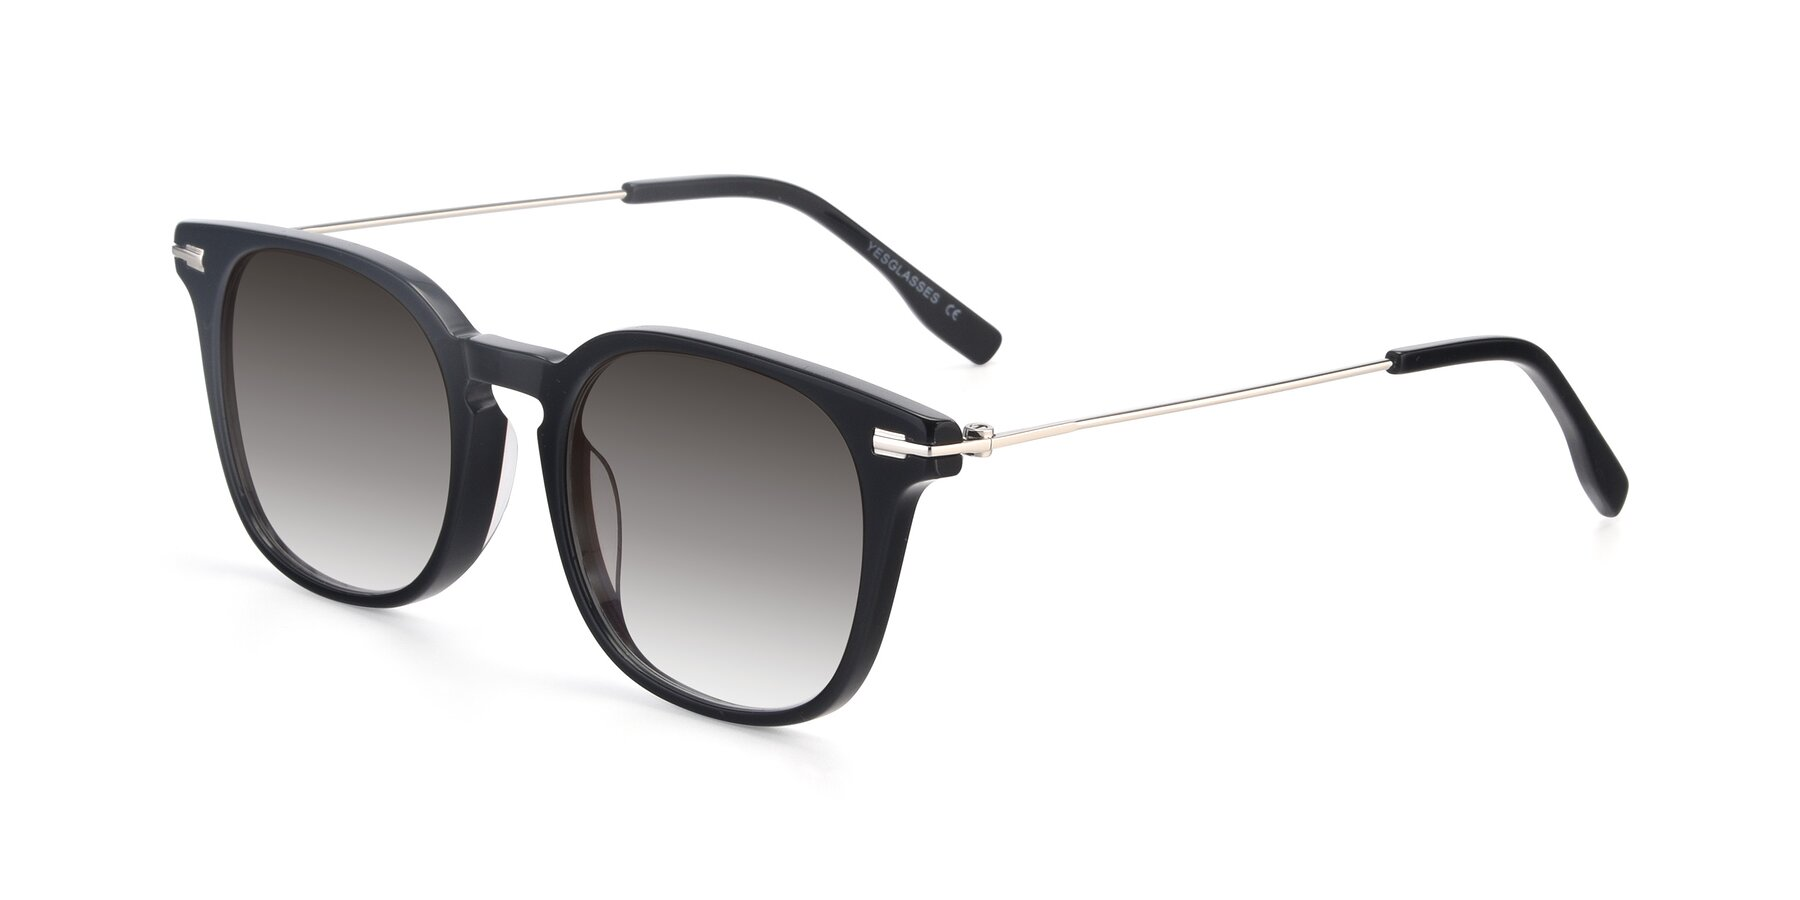 Angle of 17711 in Black with Gray Gradient Lenses